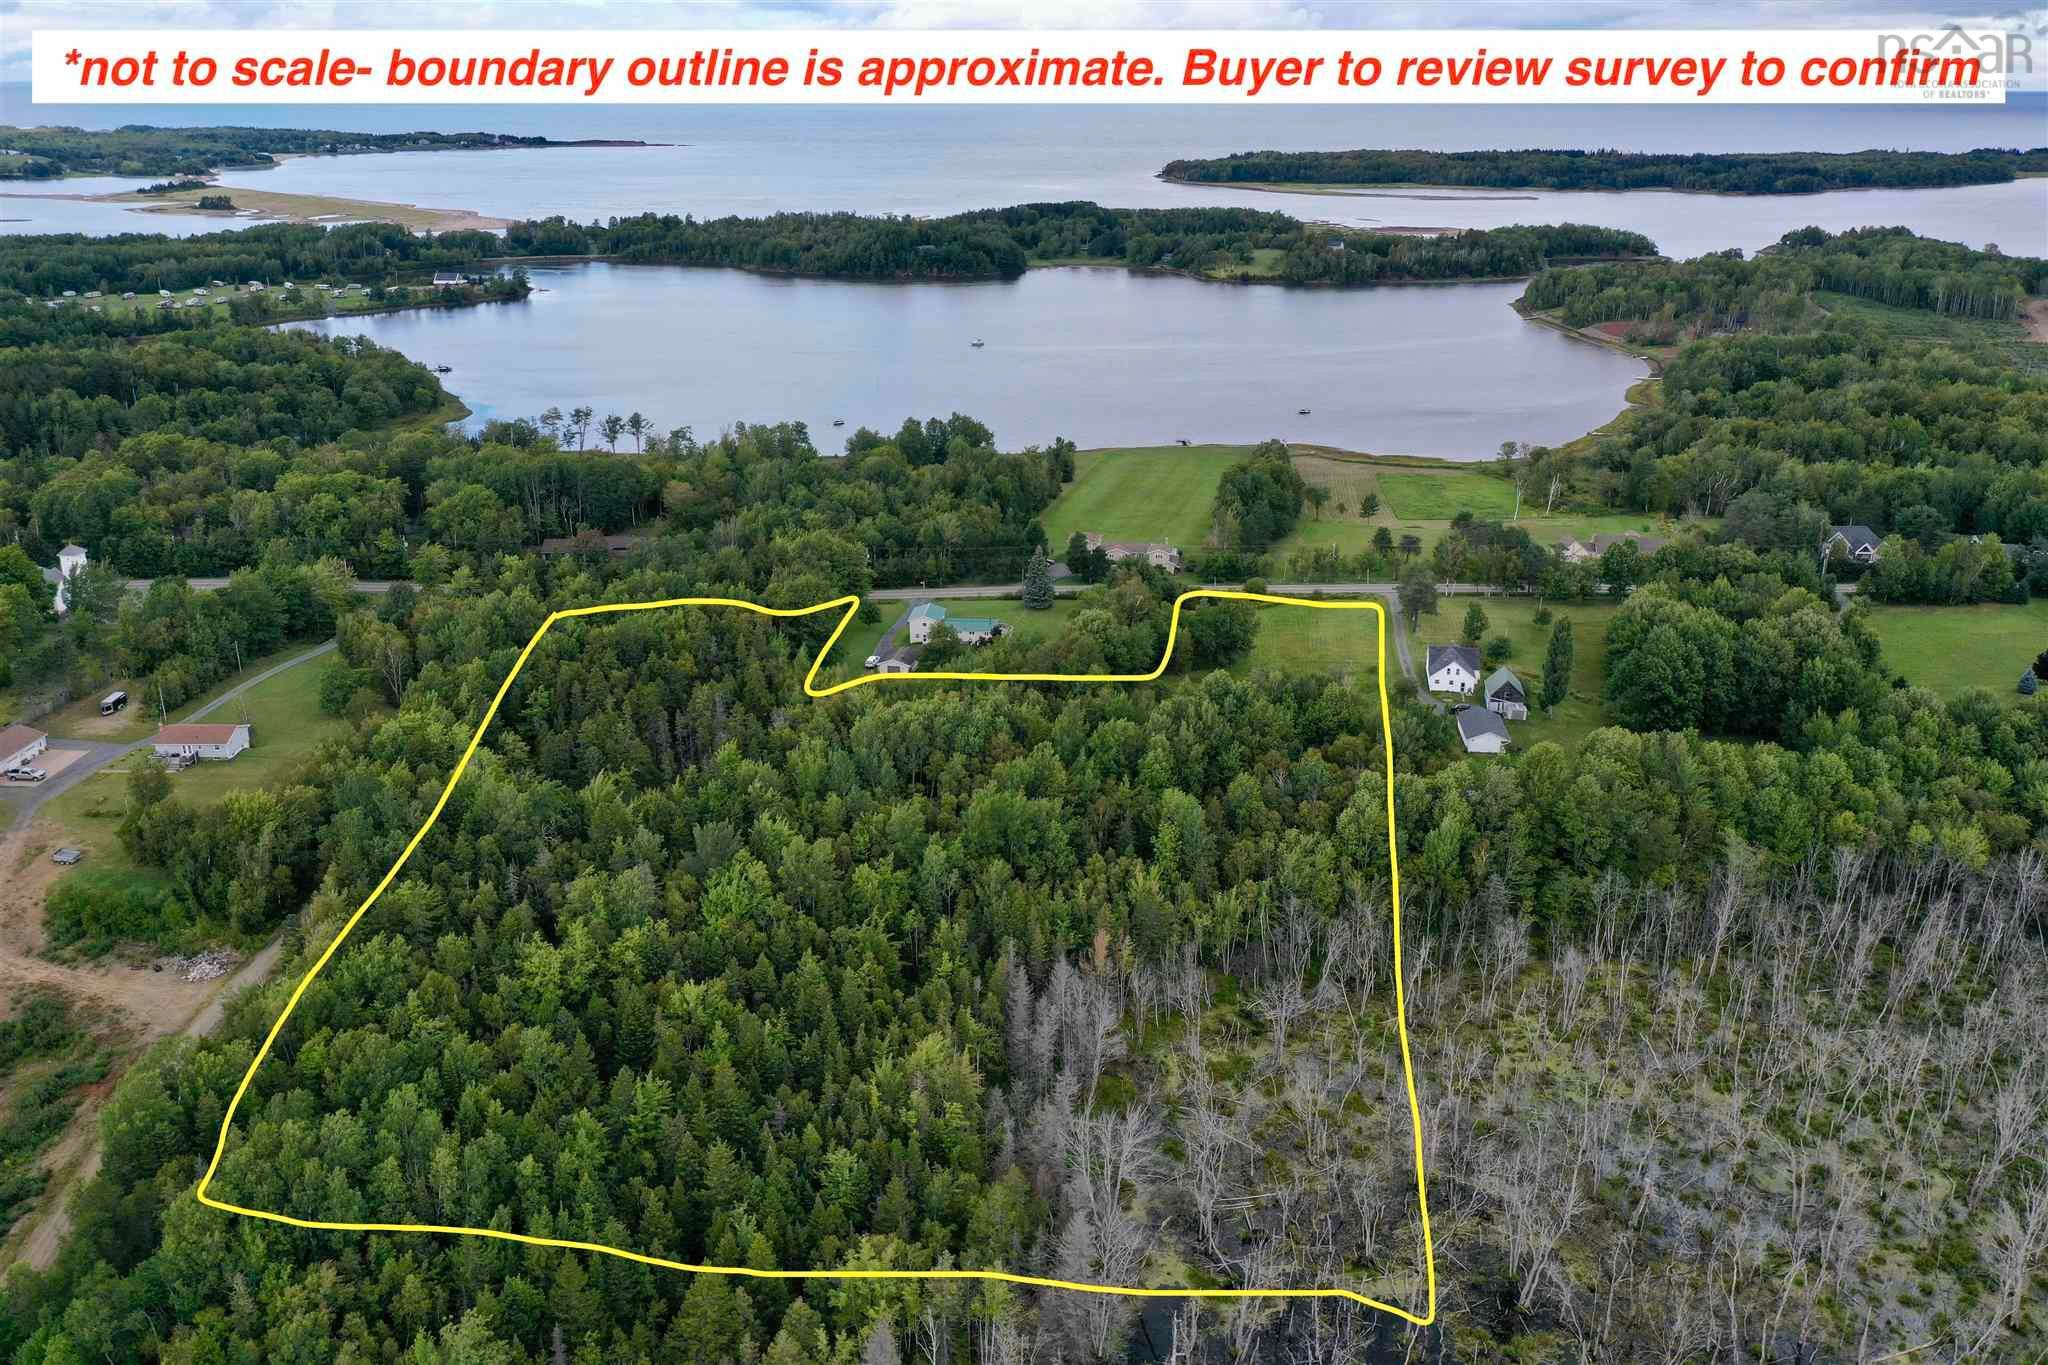 Main Photo: Lot 11-2 Little Harbour Road in Little Harbour: 108-Rural Pictou County Vacant Land for sale (Northern Region)  : MLS®# 202123060